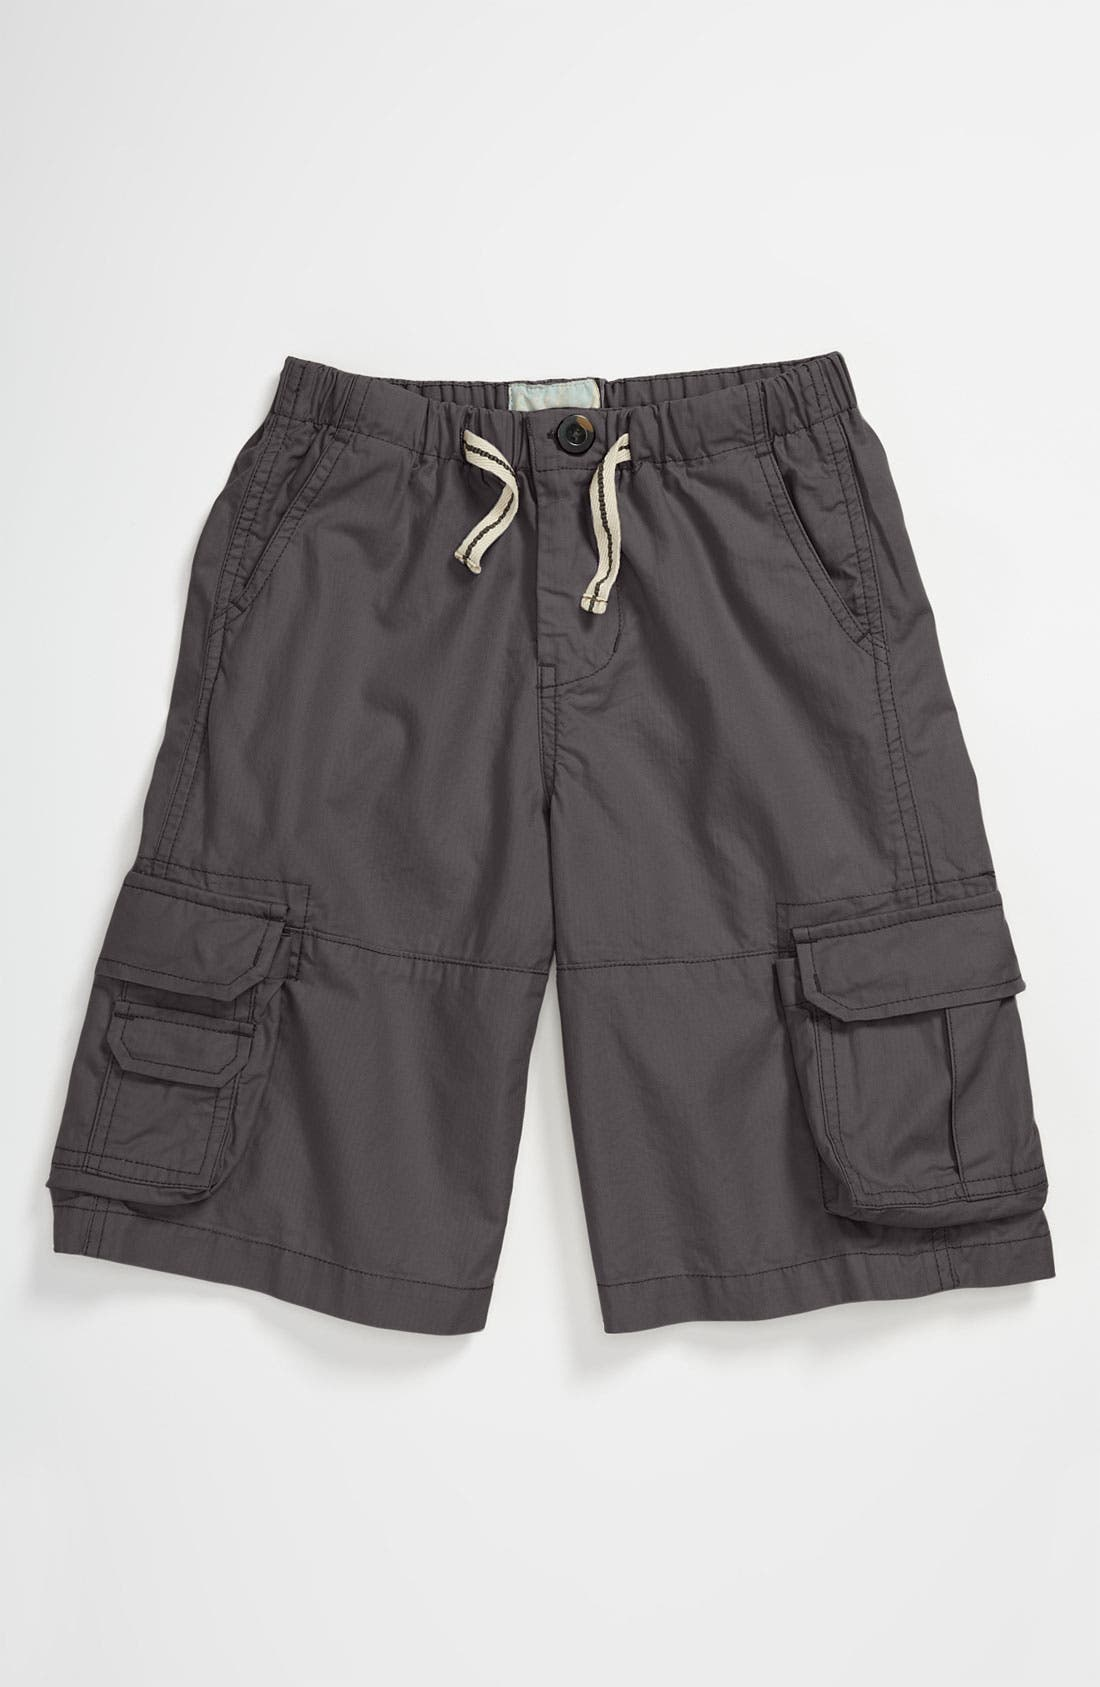 Main Image - Peek 'New Beach' Cargo Shorts (Toddler, Little Boys & Big Boys)